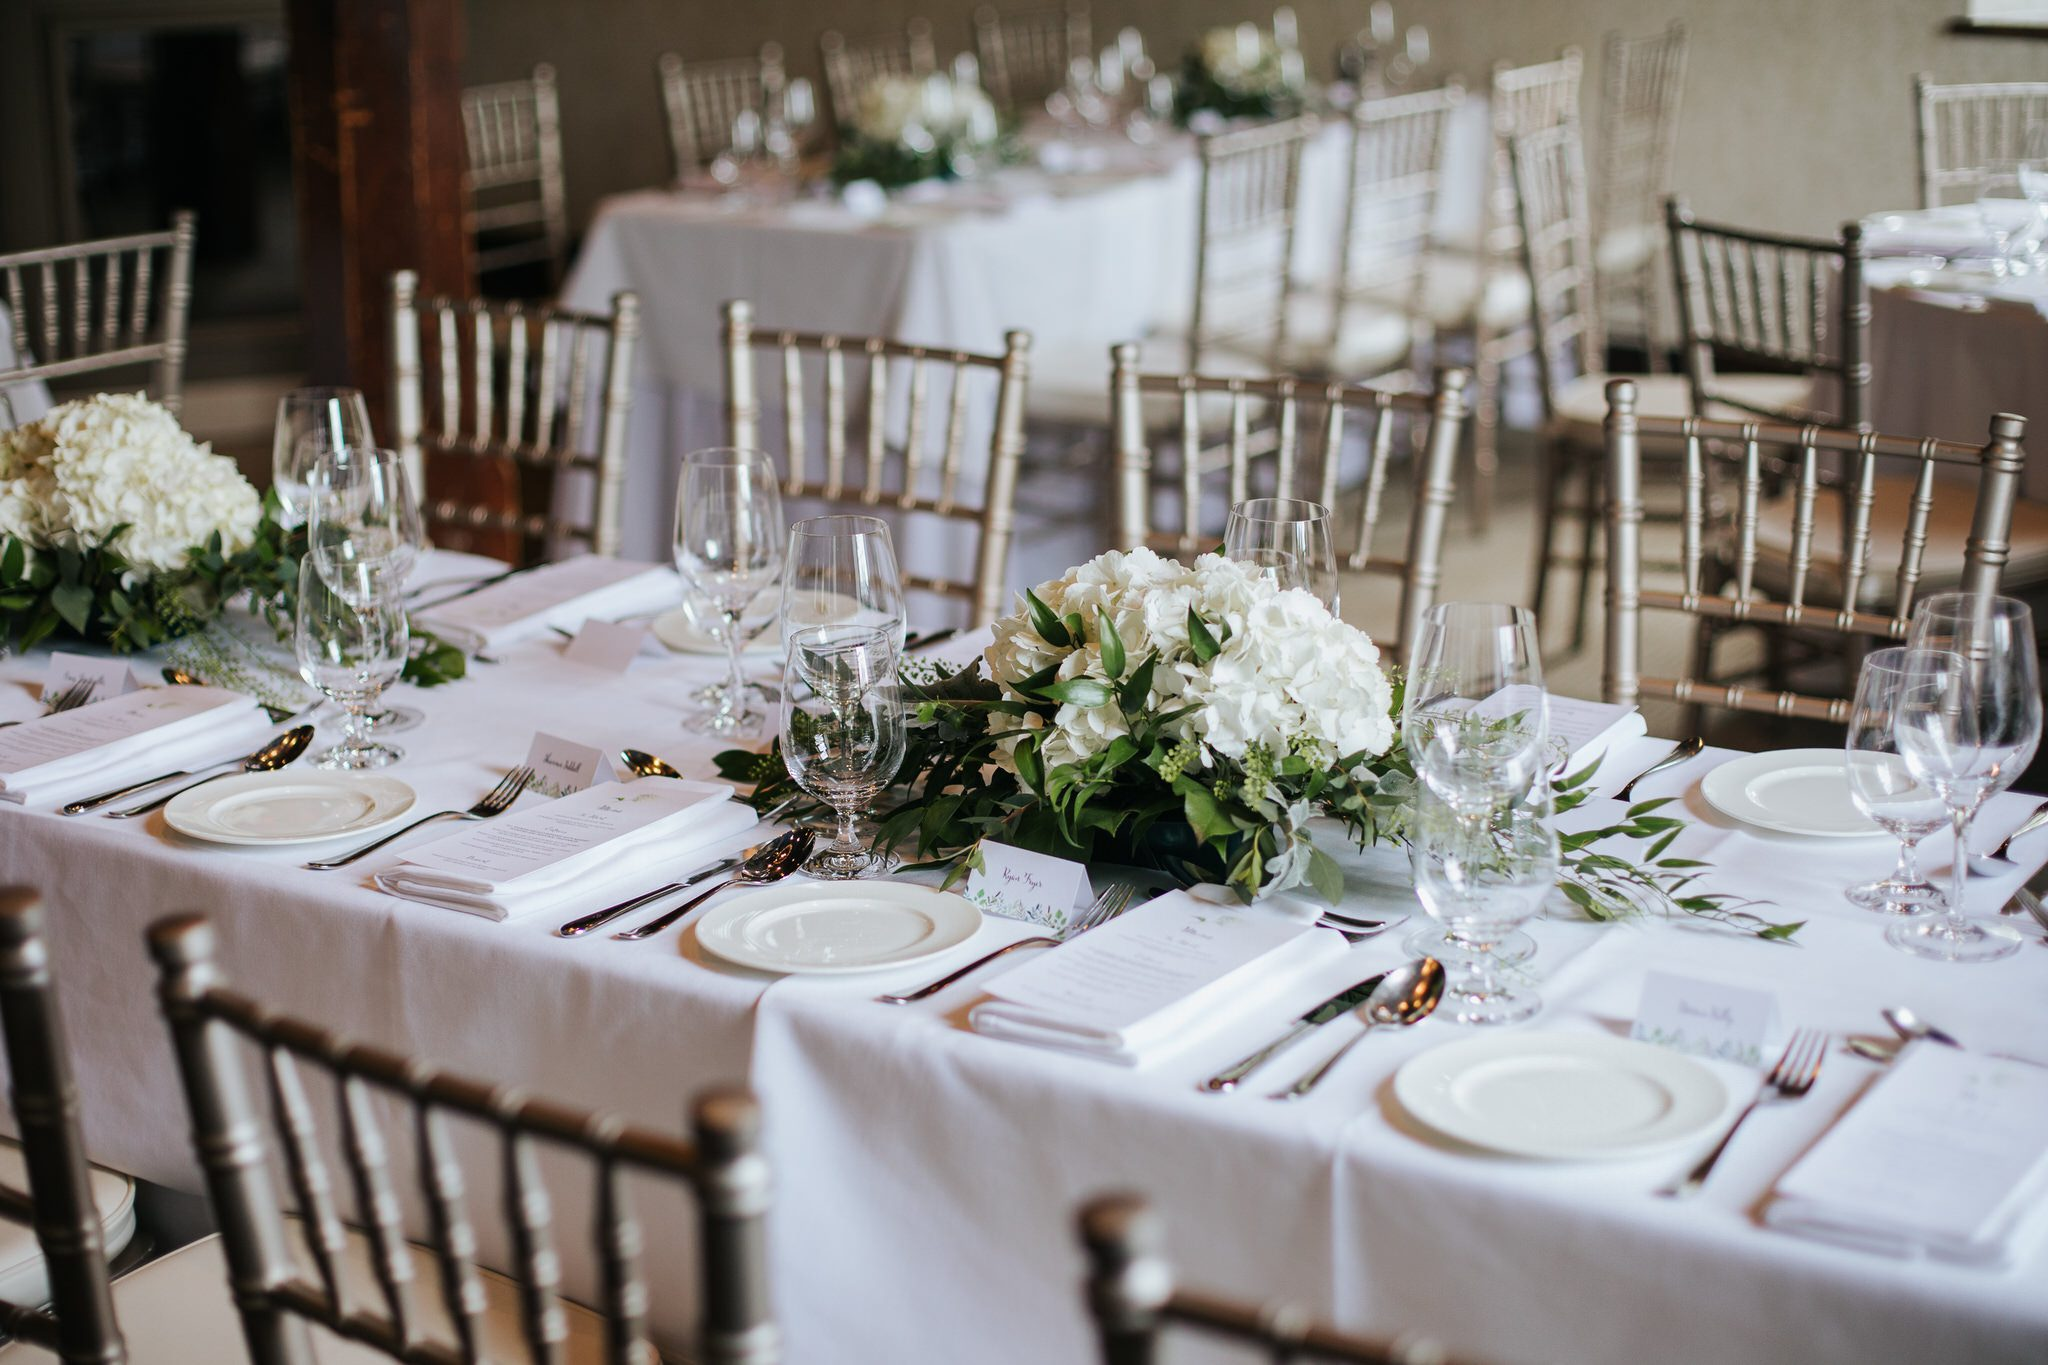 Ancaster Mill Wedding - reception table details